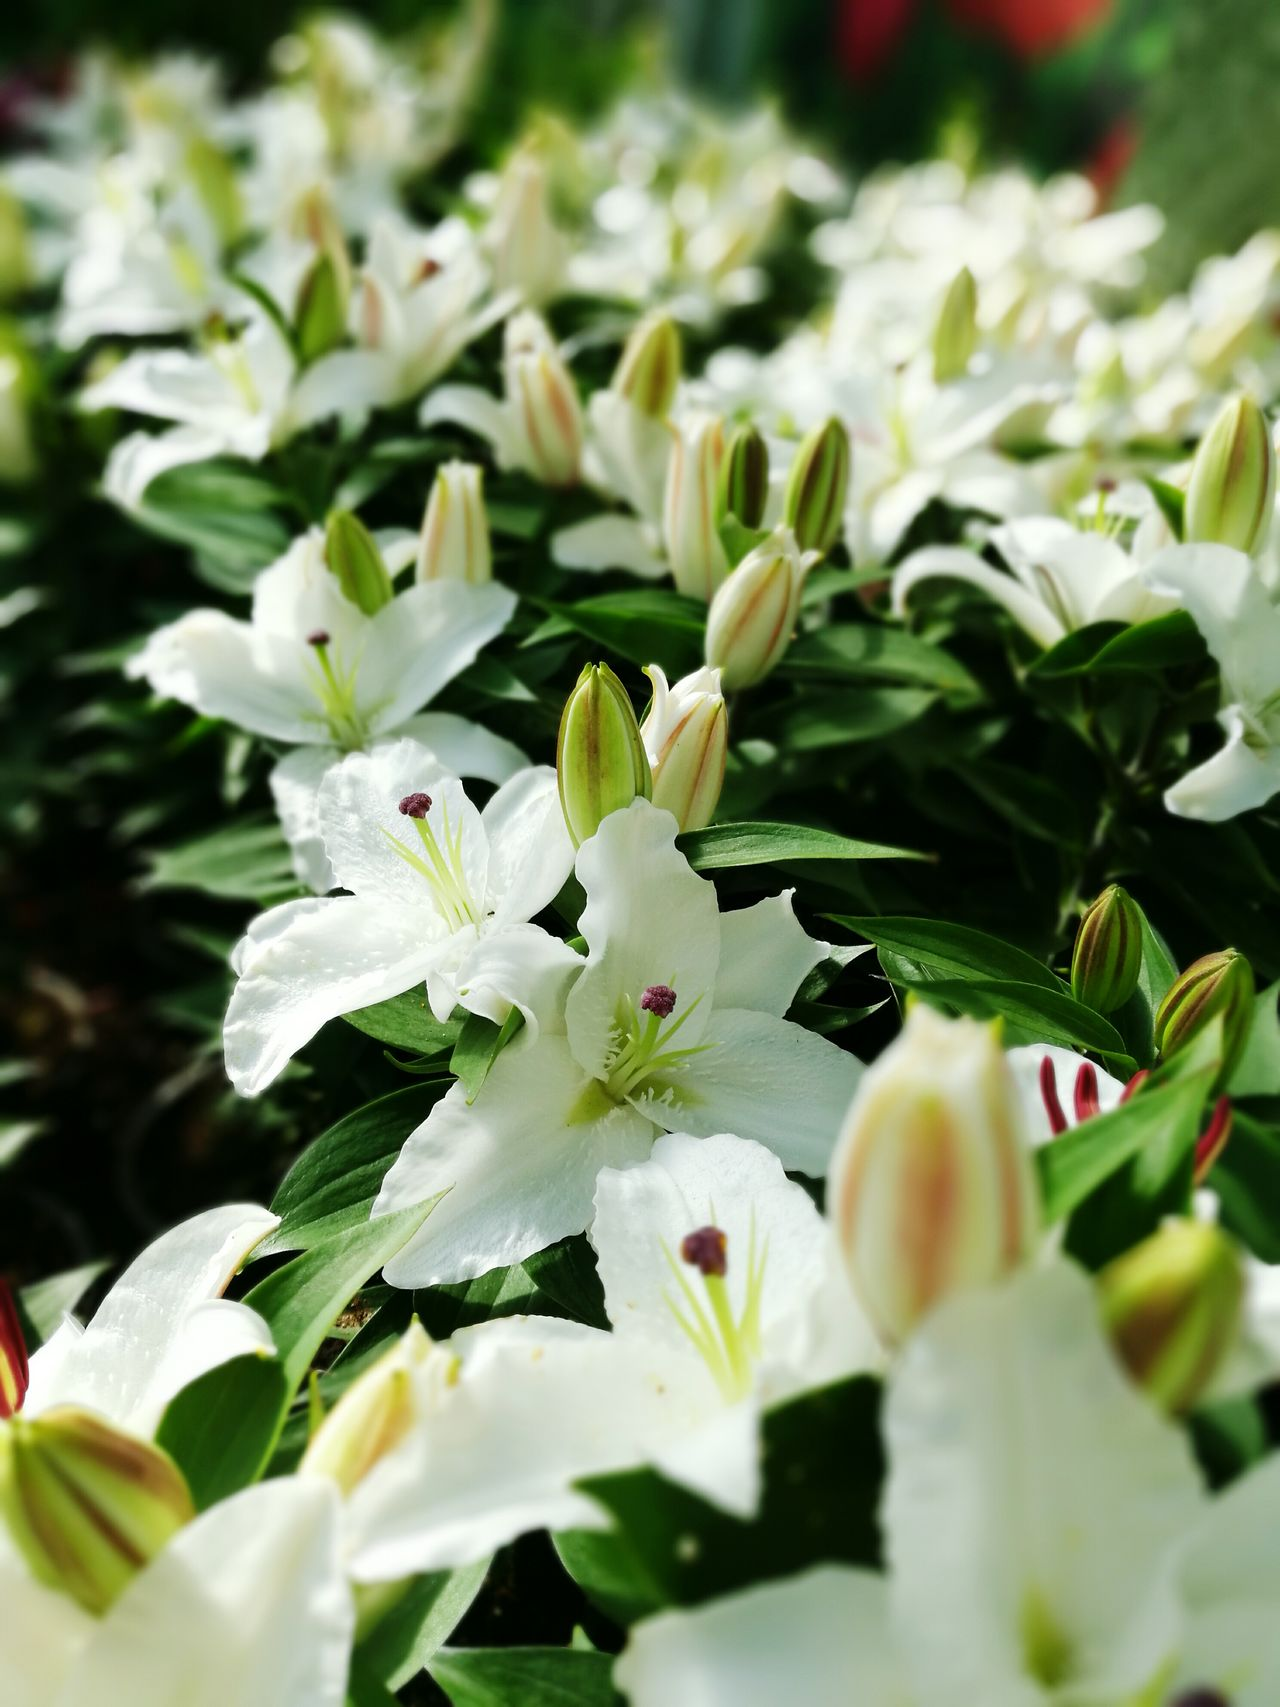 Lilies rows Nature Background Leaf Growth Plant Flower Flower Head Freshness Green Color Lilies Lily Lilies In Bloom Fullframe Pure White Garden